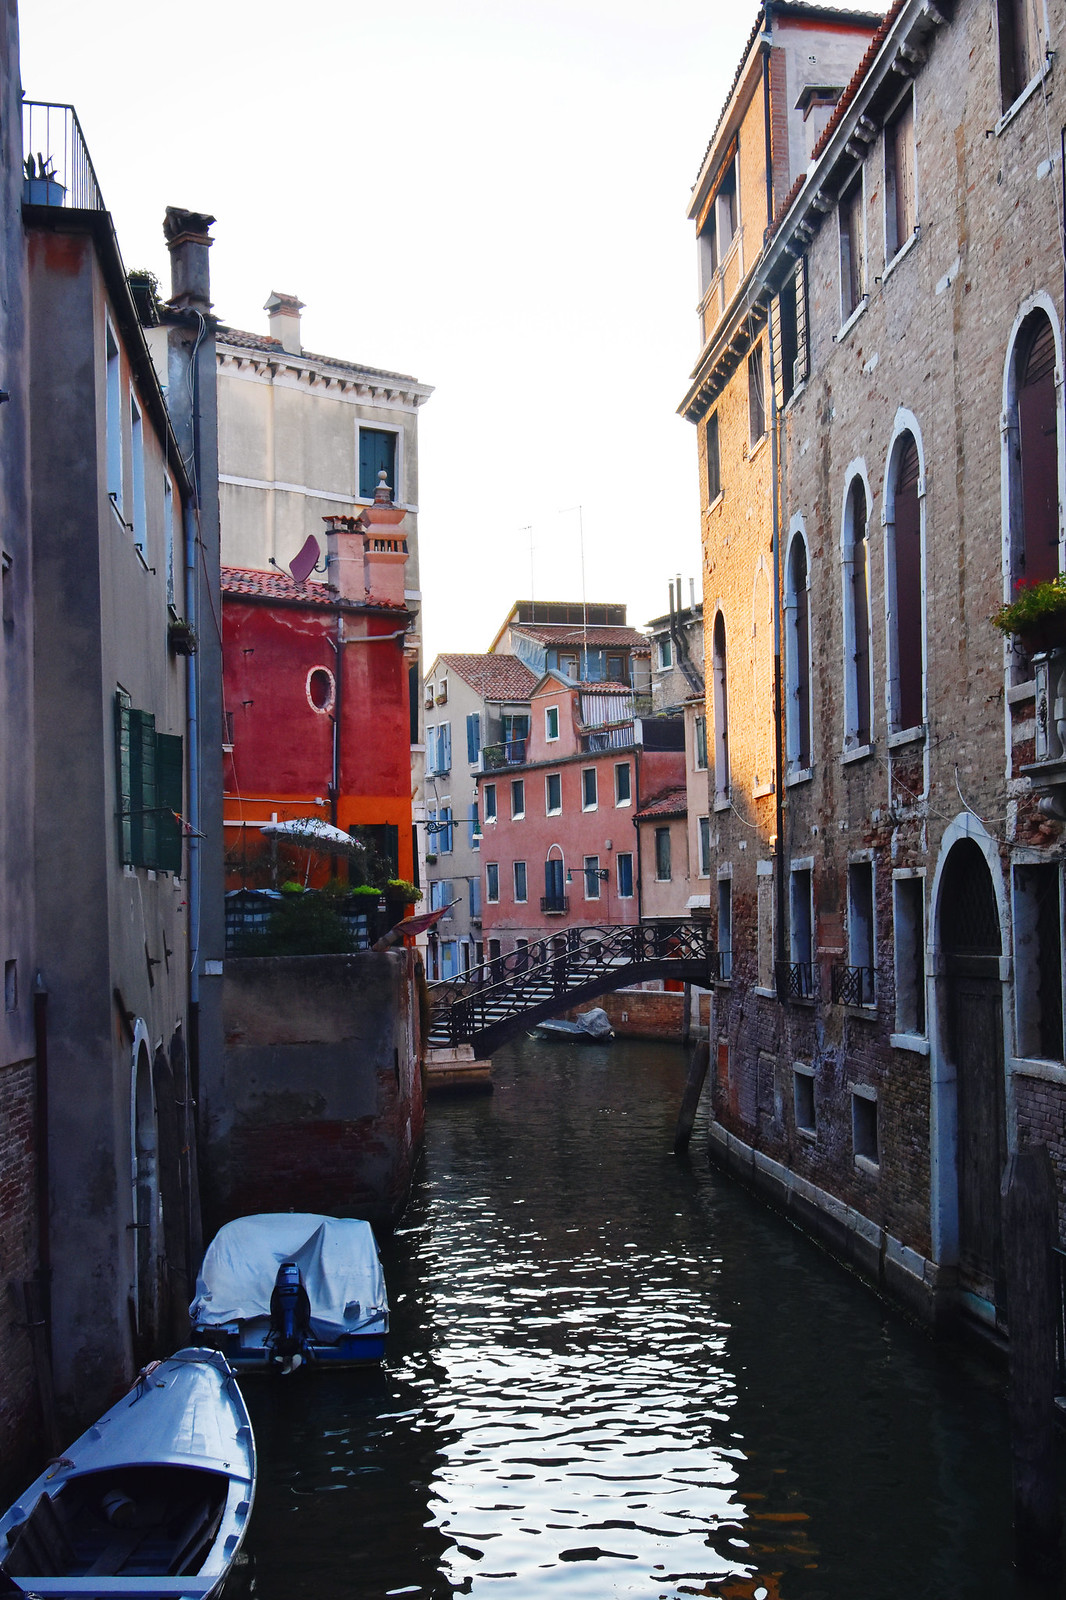 10 tips for visiting Venice